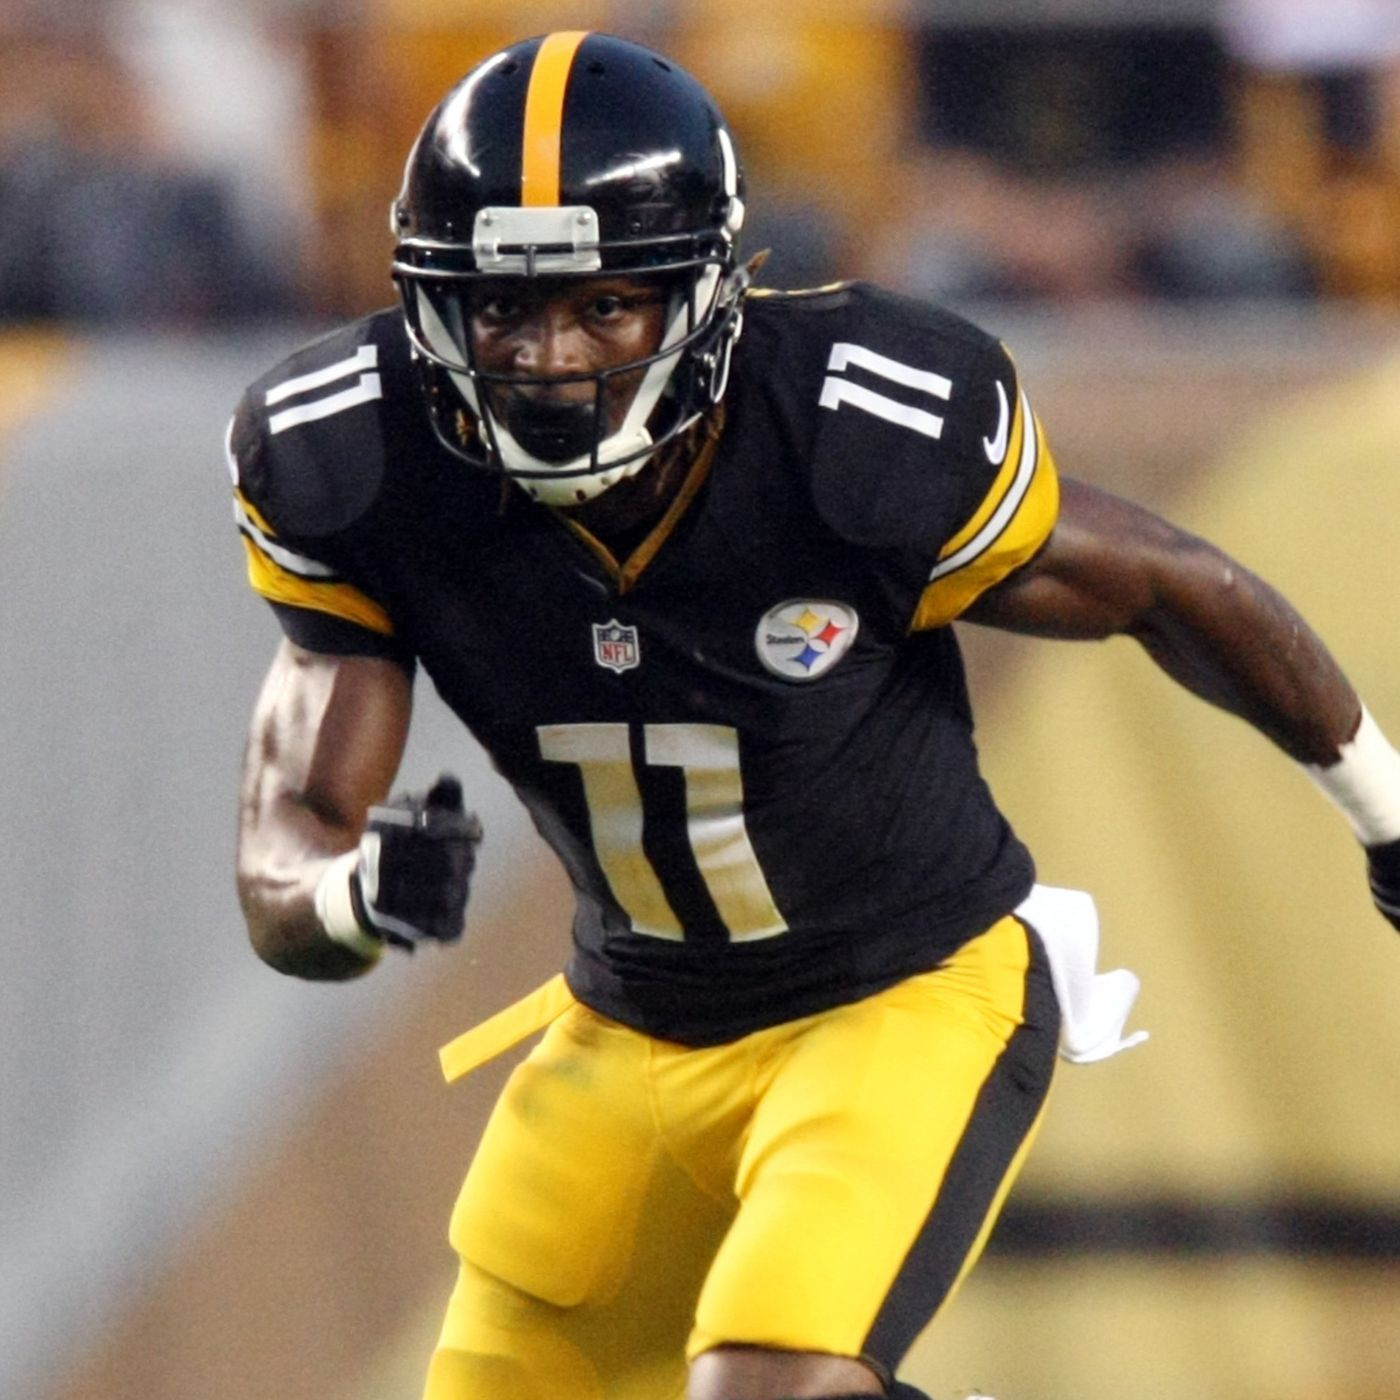 a667c94e1 Upon Further Review: GIF breakdowns from the Steelers 18-13 loss to the  Giants. New ...